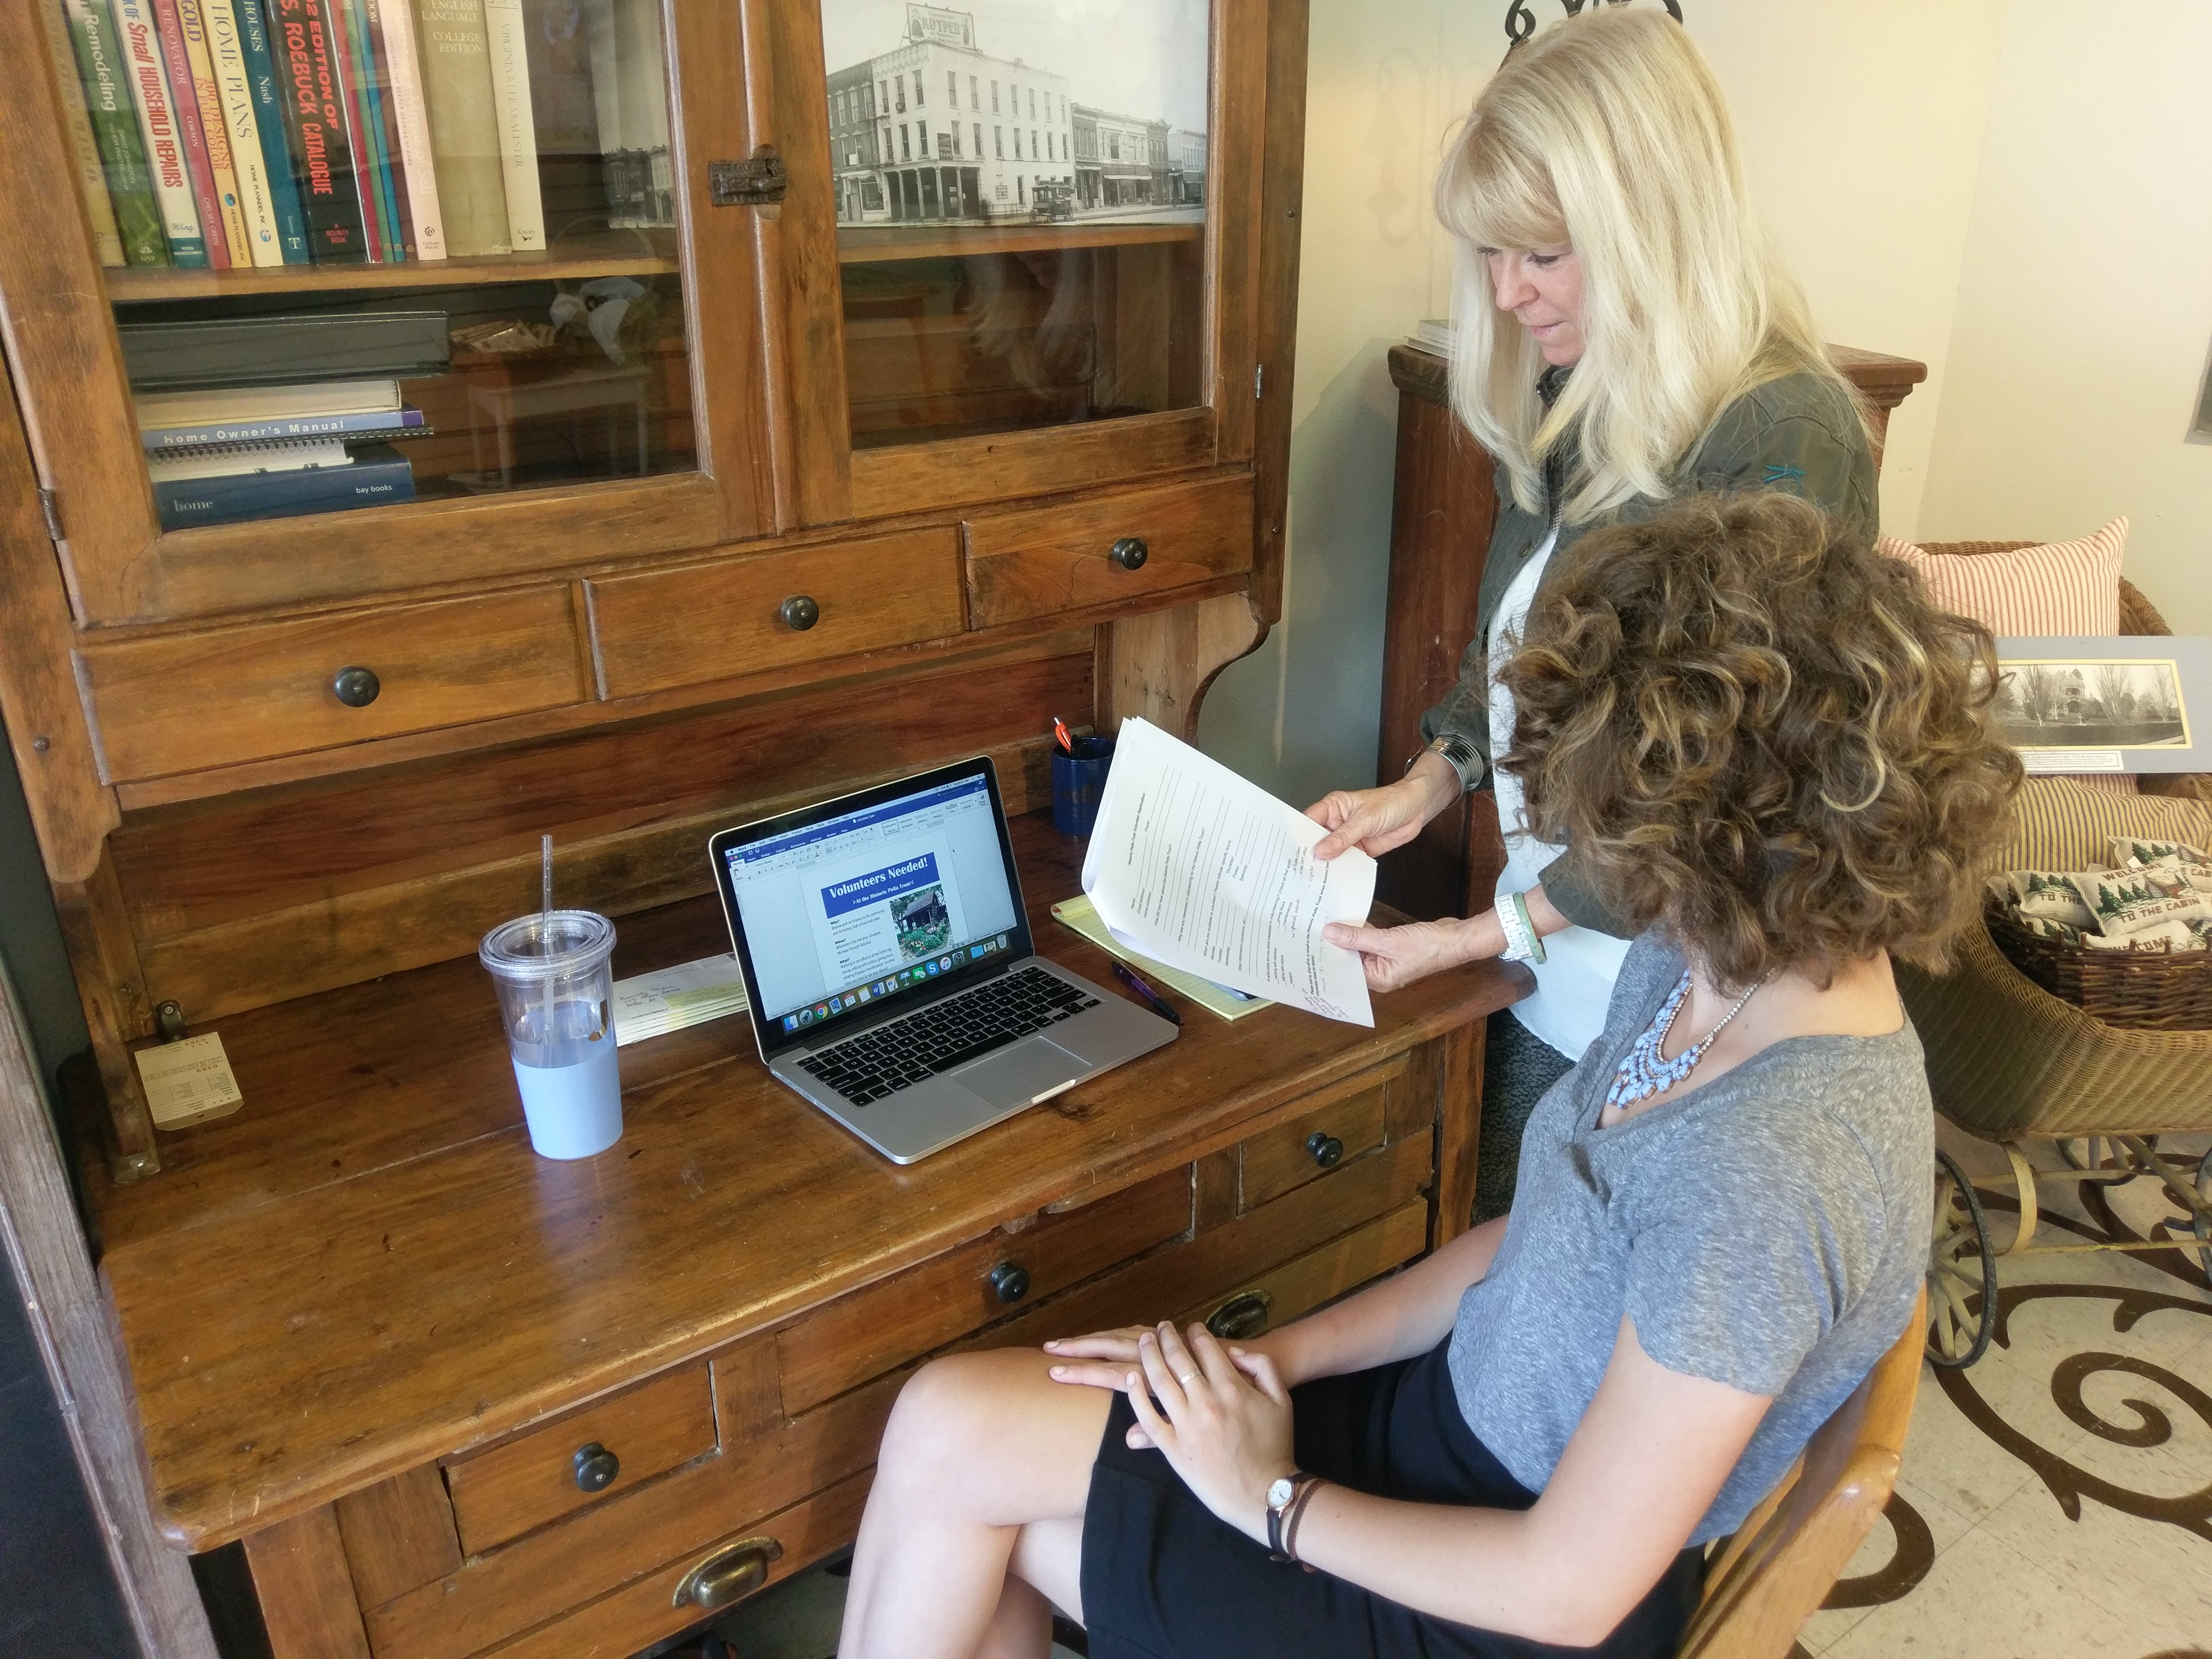 Lynn Branderhorst with Historic Pella Trust works with Intern Jesse Vos